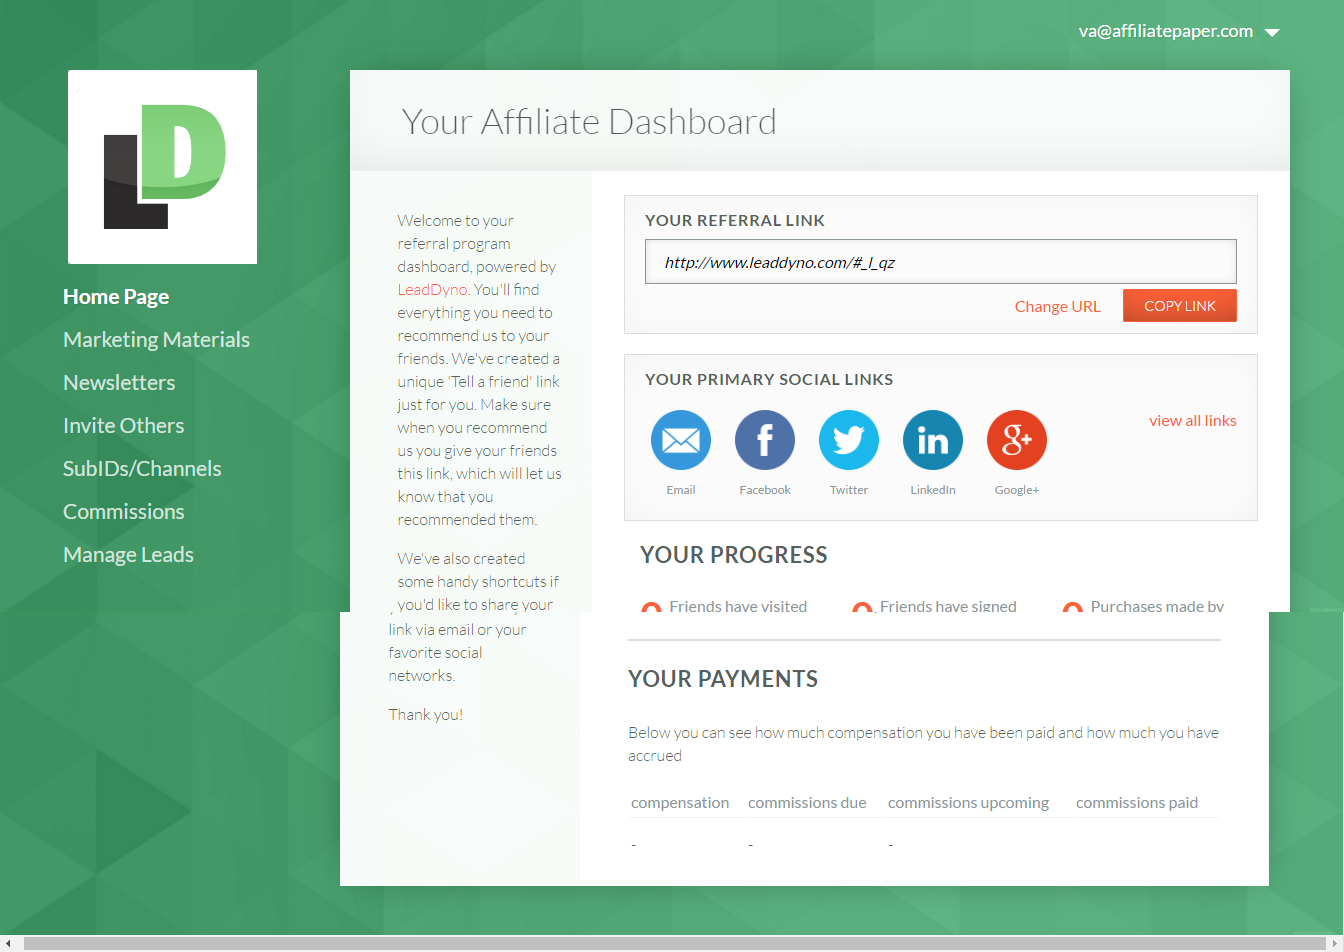 Leaddyno dashboard affiliate program affiliatepaper